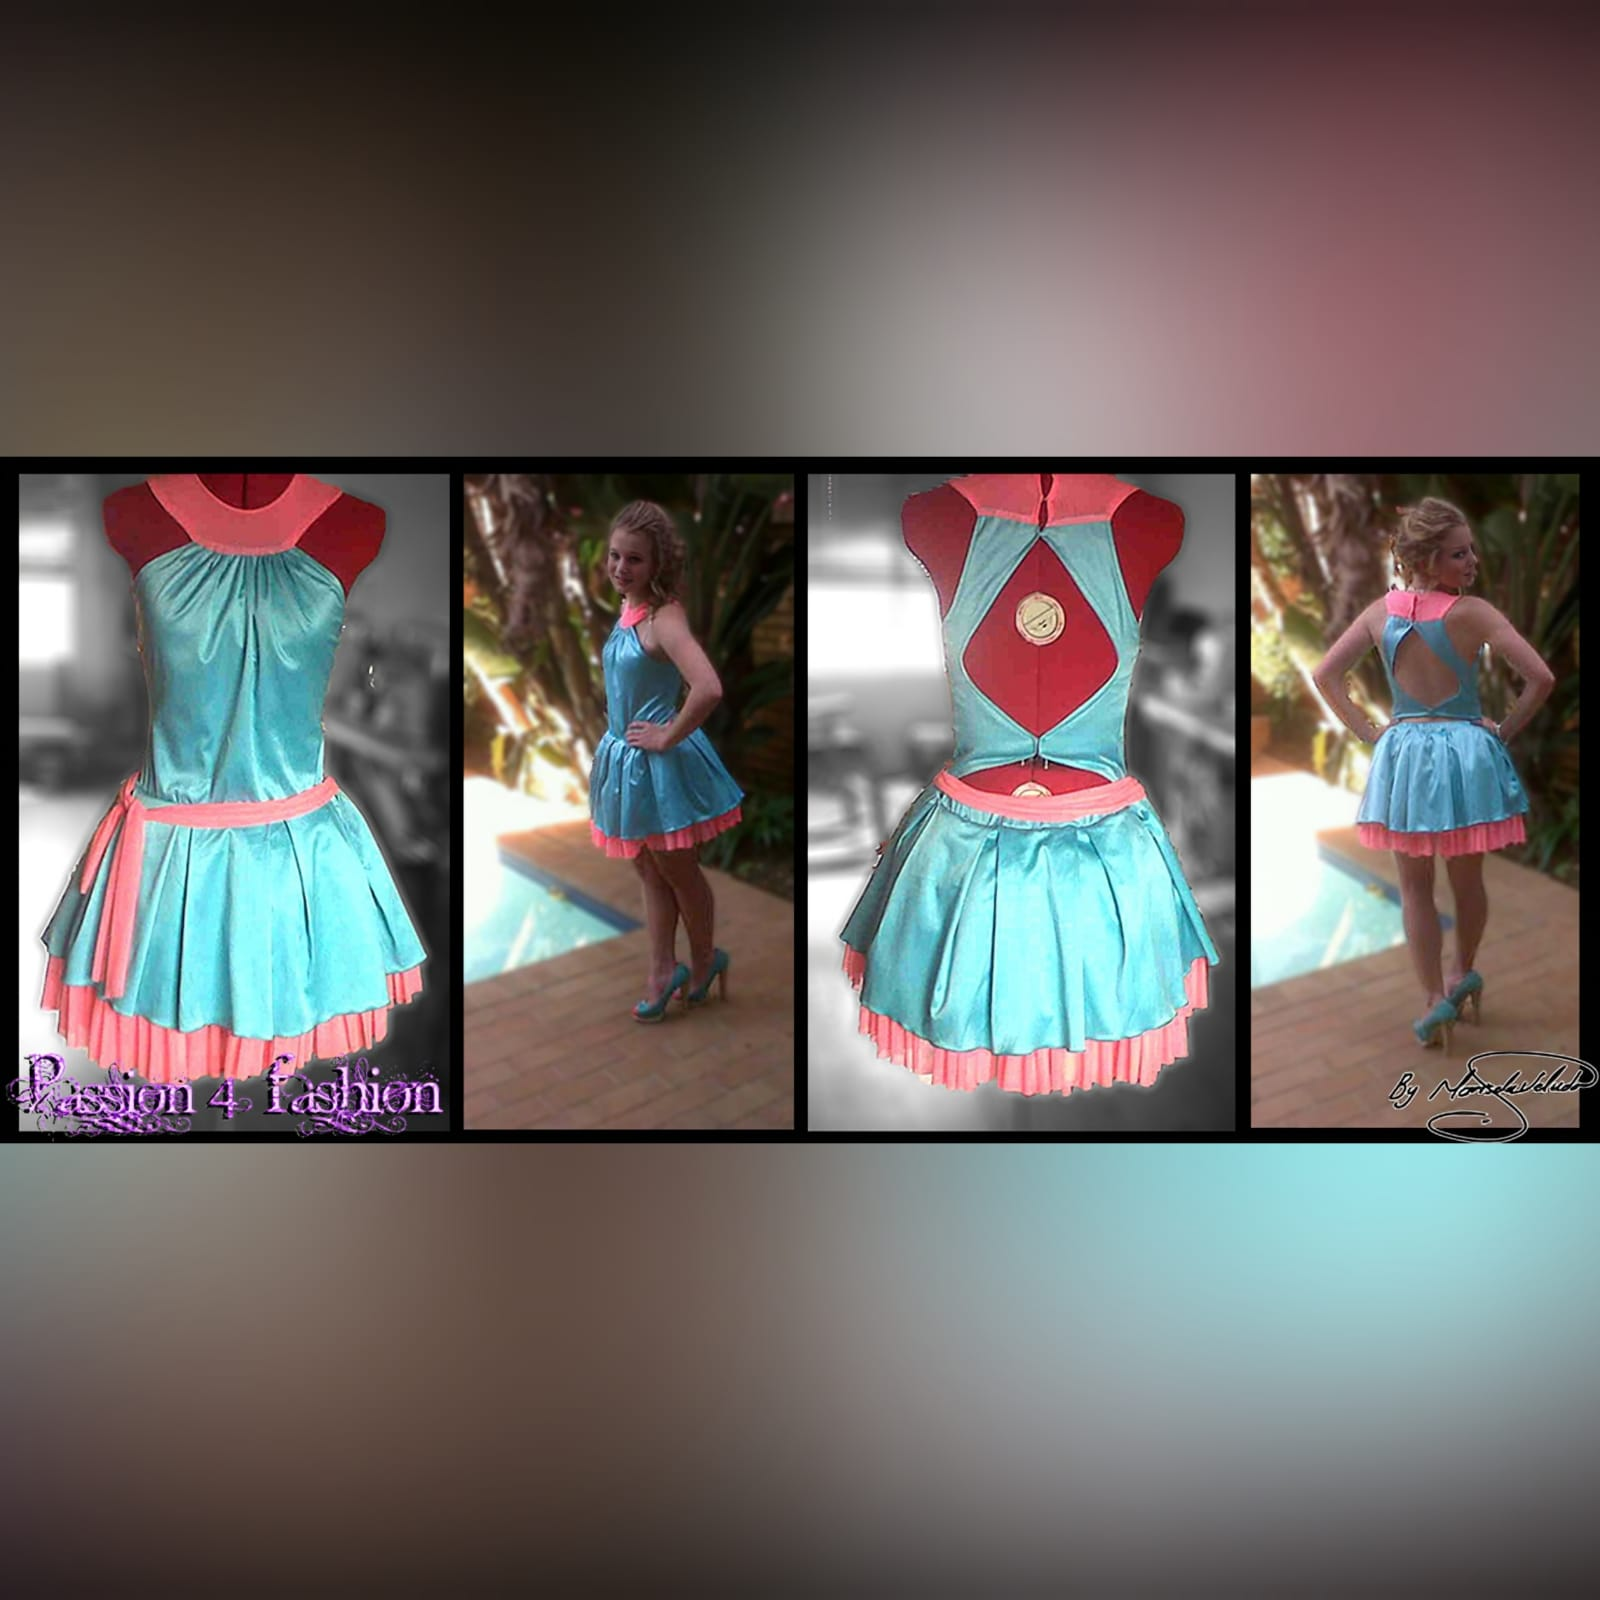 Mint green and coral short party dress 3 mint green and coral short party dress, with a gathered neckline, pleated bottom part with a coral mesh frill, with a diamond open back and a tie-up belt.